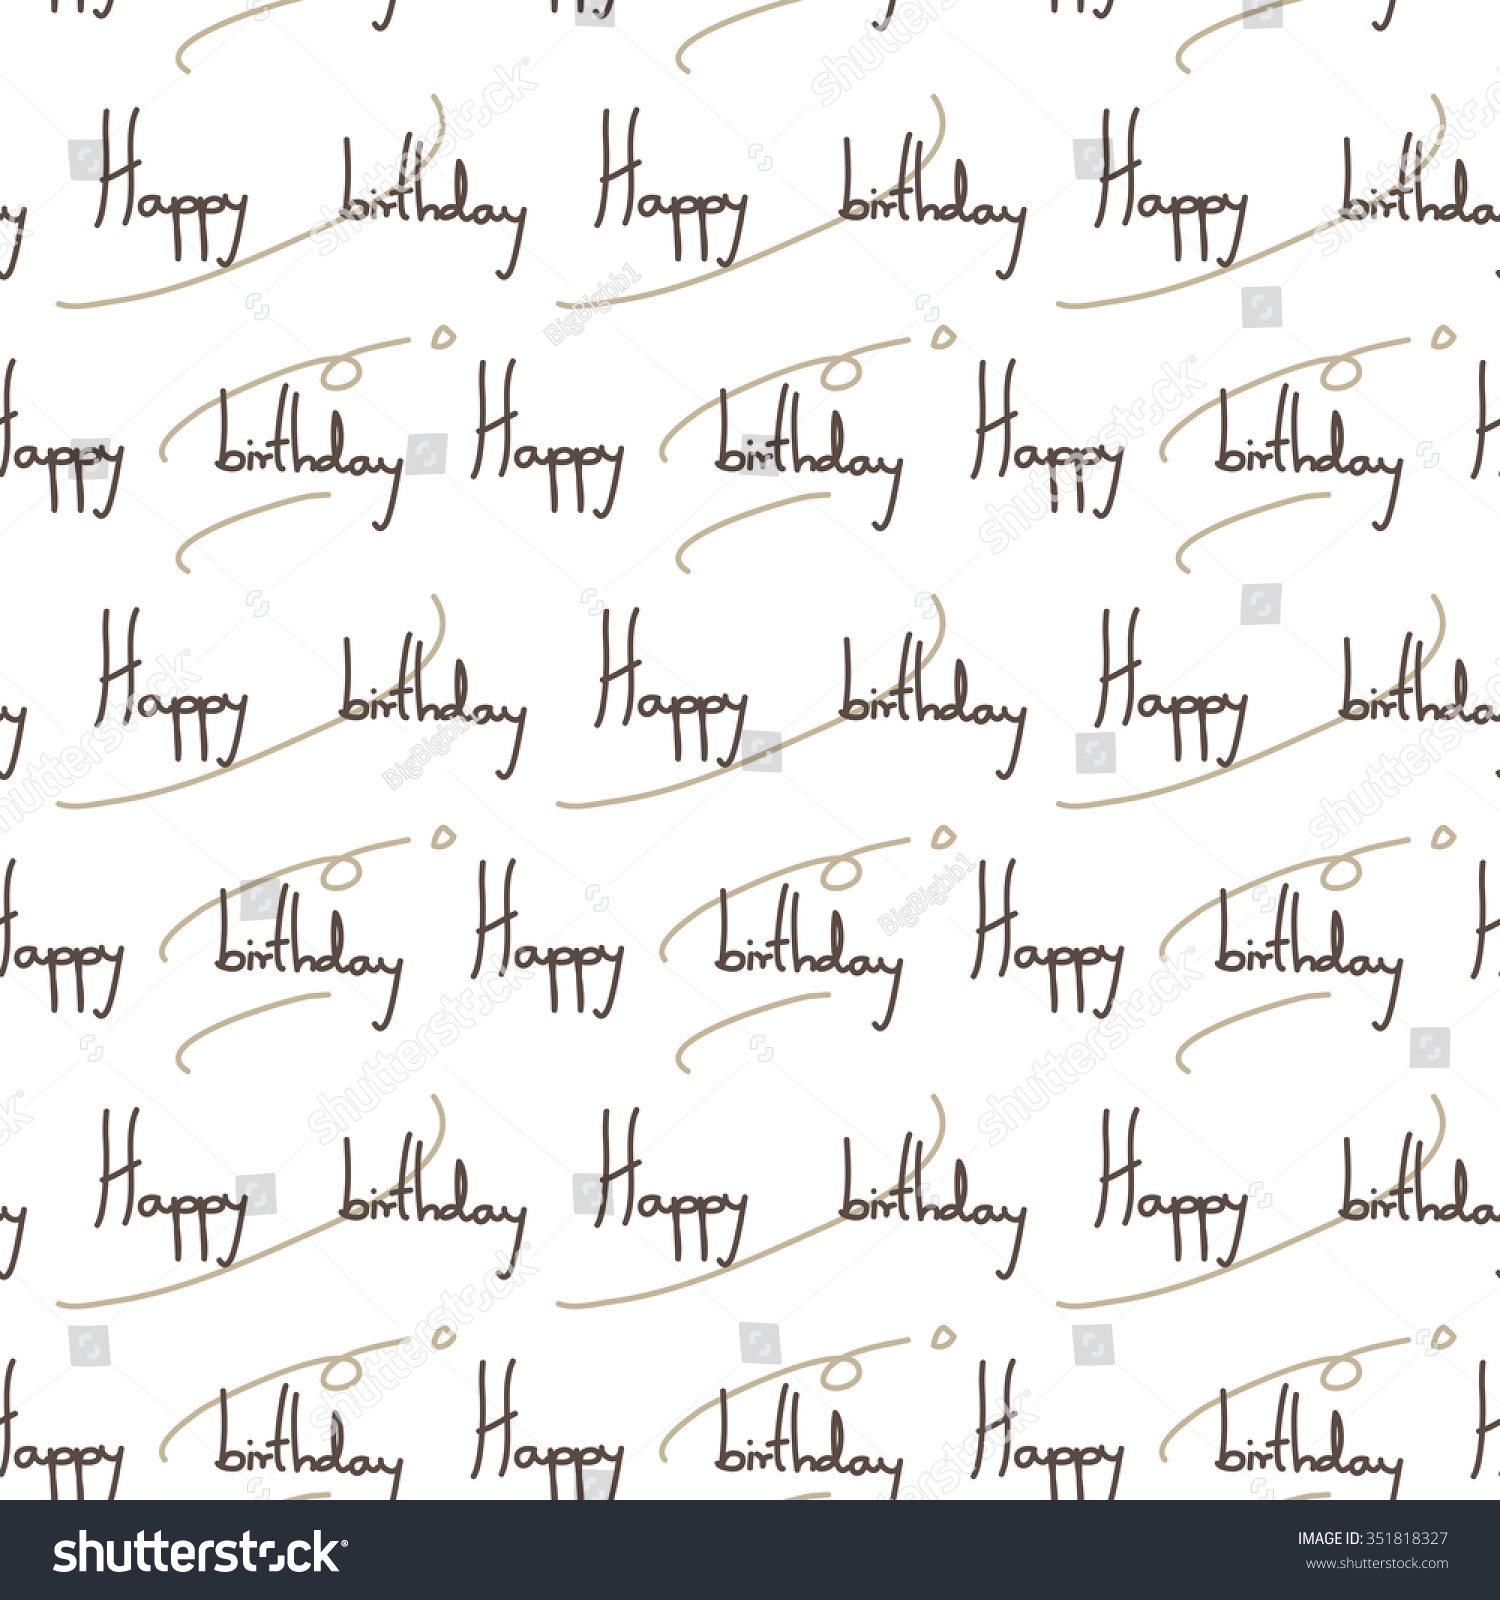 happy birthday wrapping paper seamless pattern stock vector happy birthday wrapping paper seamless pattern in vector